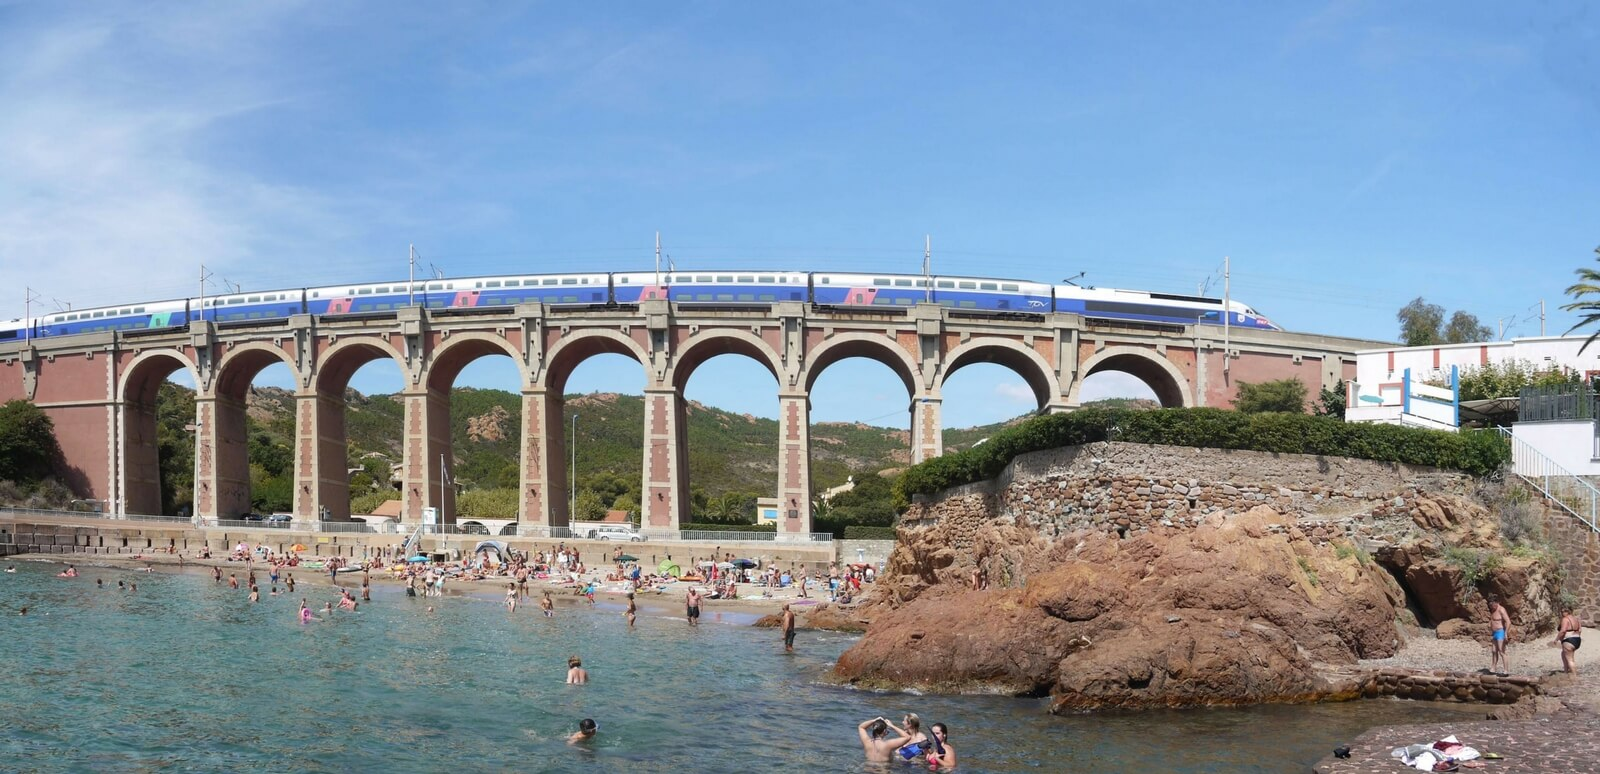 train in france going over a bridge and bathers in a river at the bottom of the bridge